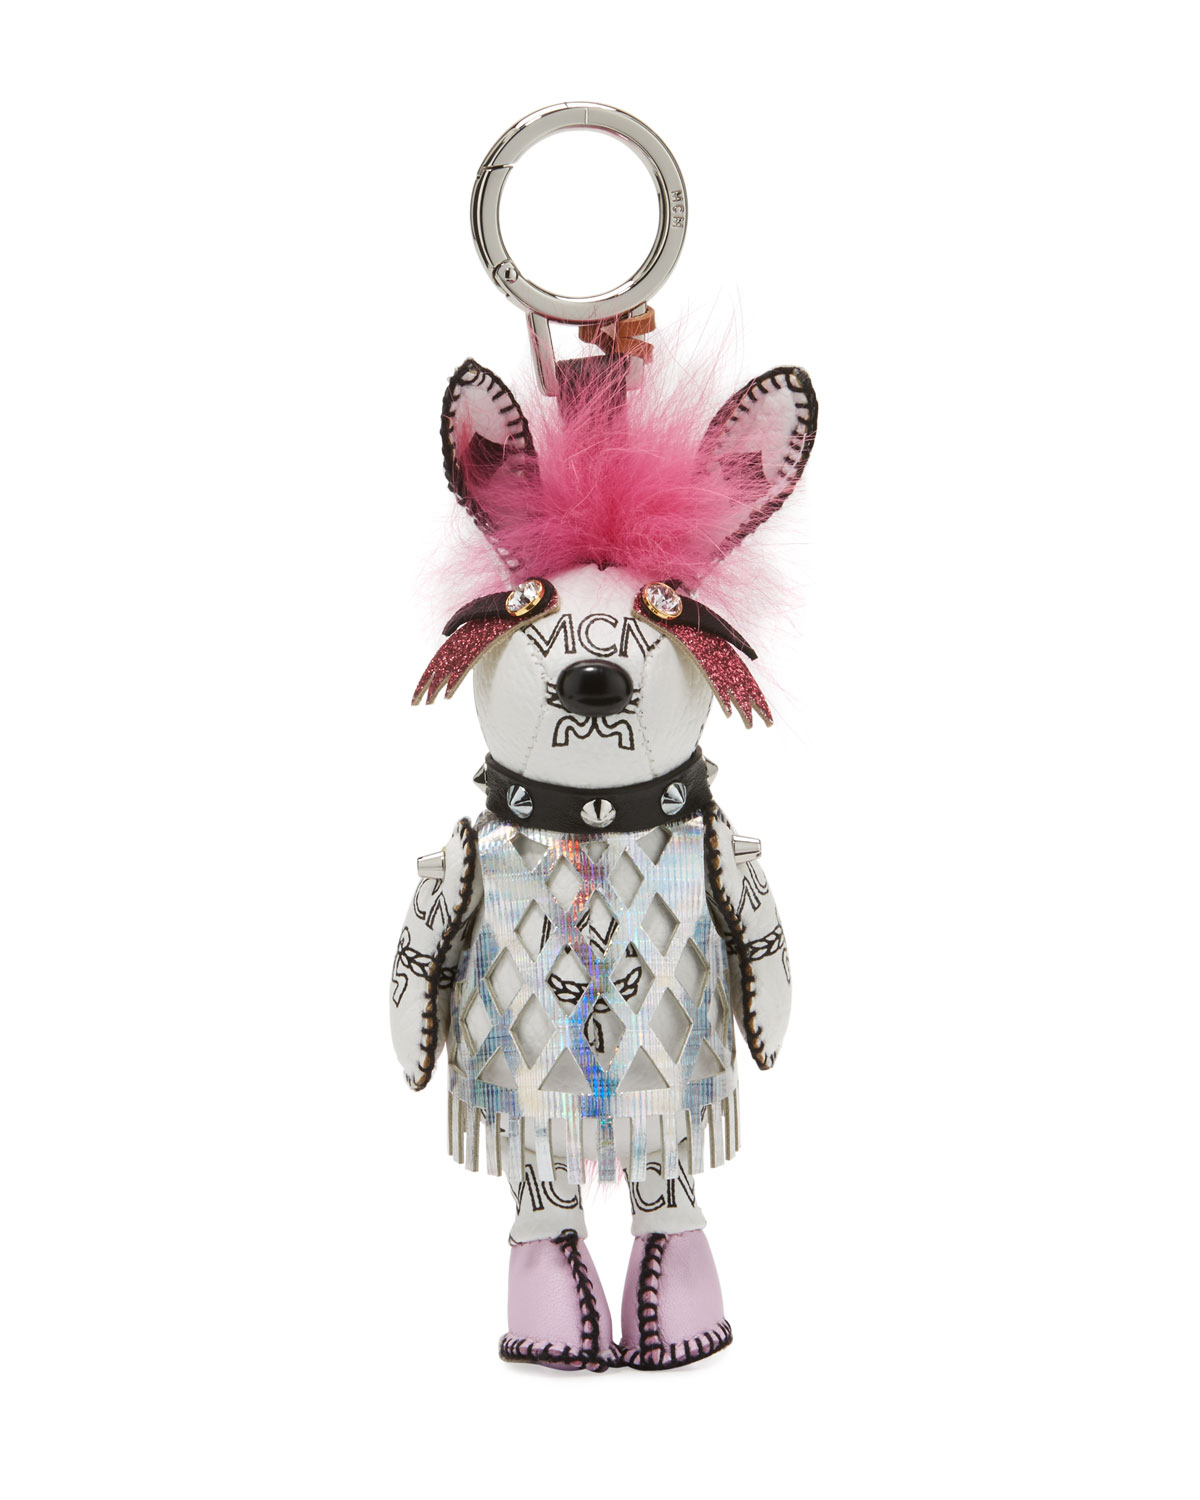 MCM Rabbit Punk Charm for Handbag   Neiman Marcus 64c47e4c19